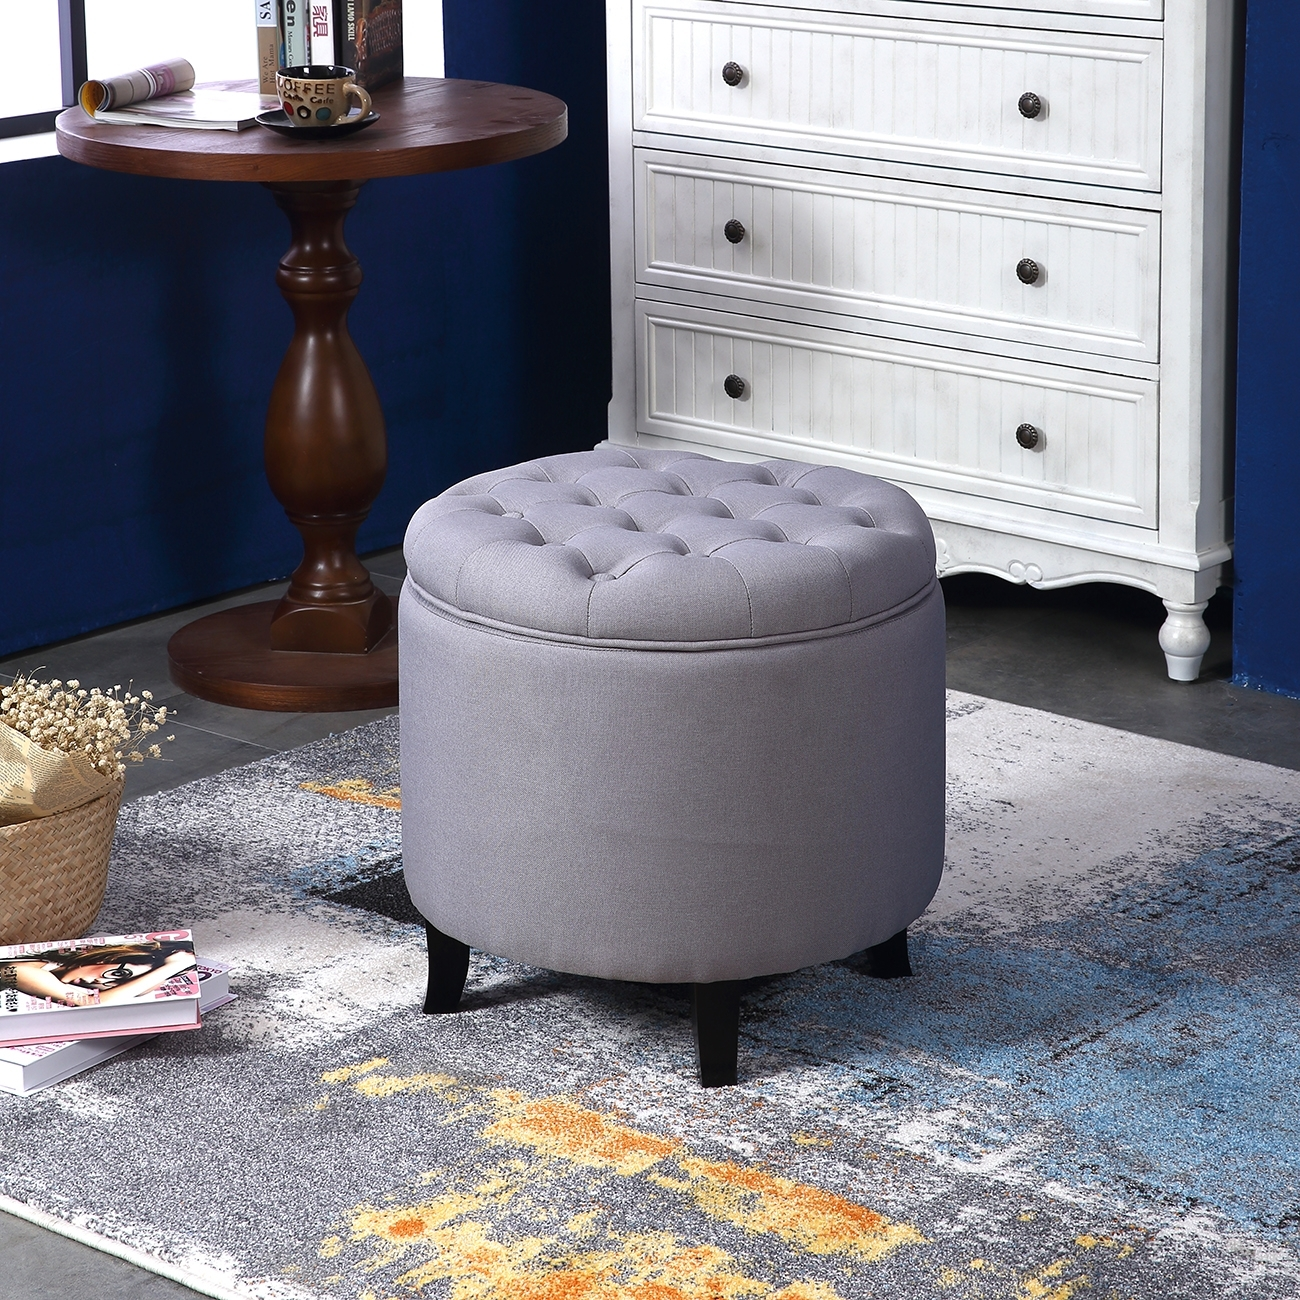 Elegant Fabric Tufted Button Ottoman Round Footstool Coffee Table throughout Round Button Tufted Coffee Tables (Image 9 of 30)